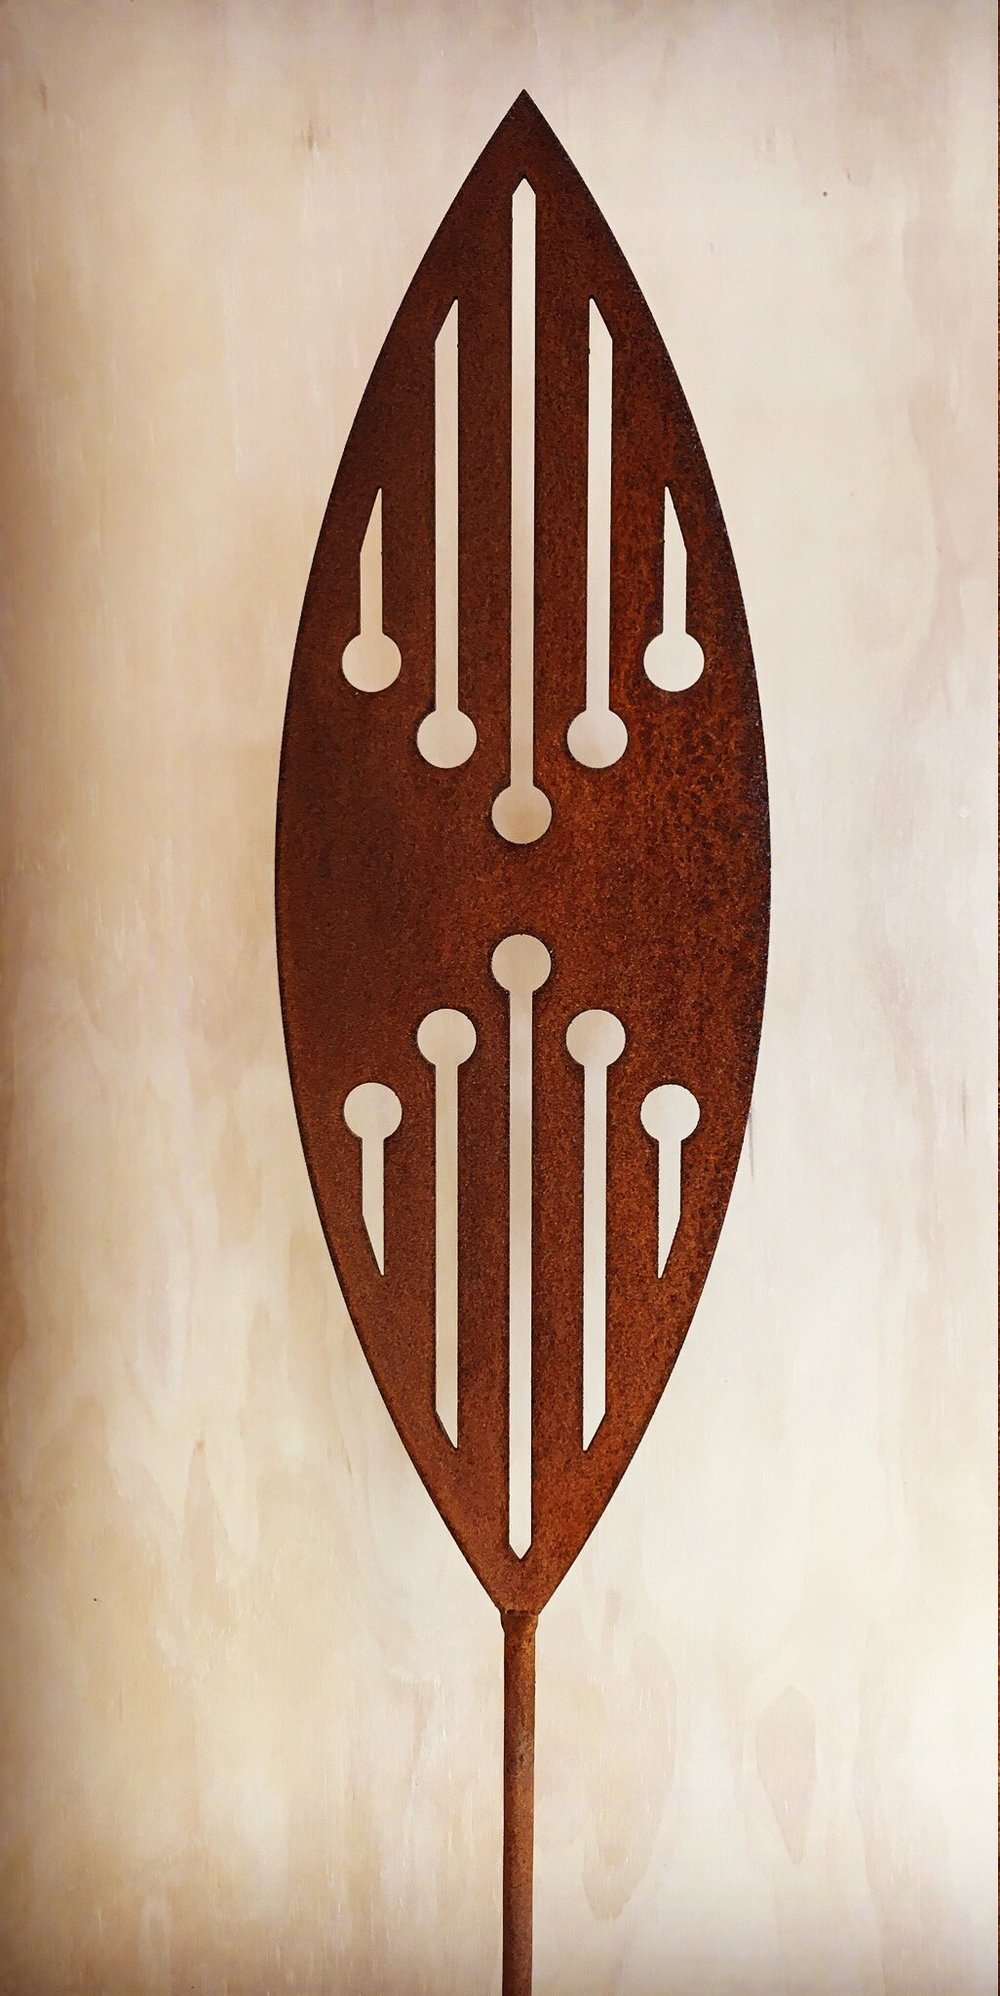 'A Rusty Affair' Corten Reflection  Grounded Art NZ ,  1650mm tall (400mm spear head on a 1250mm rod)  $95.00